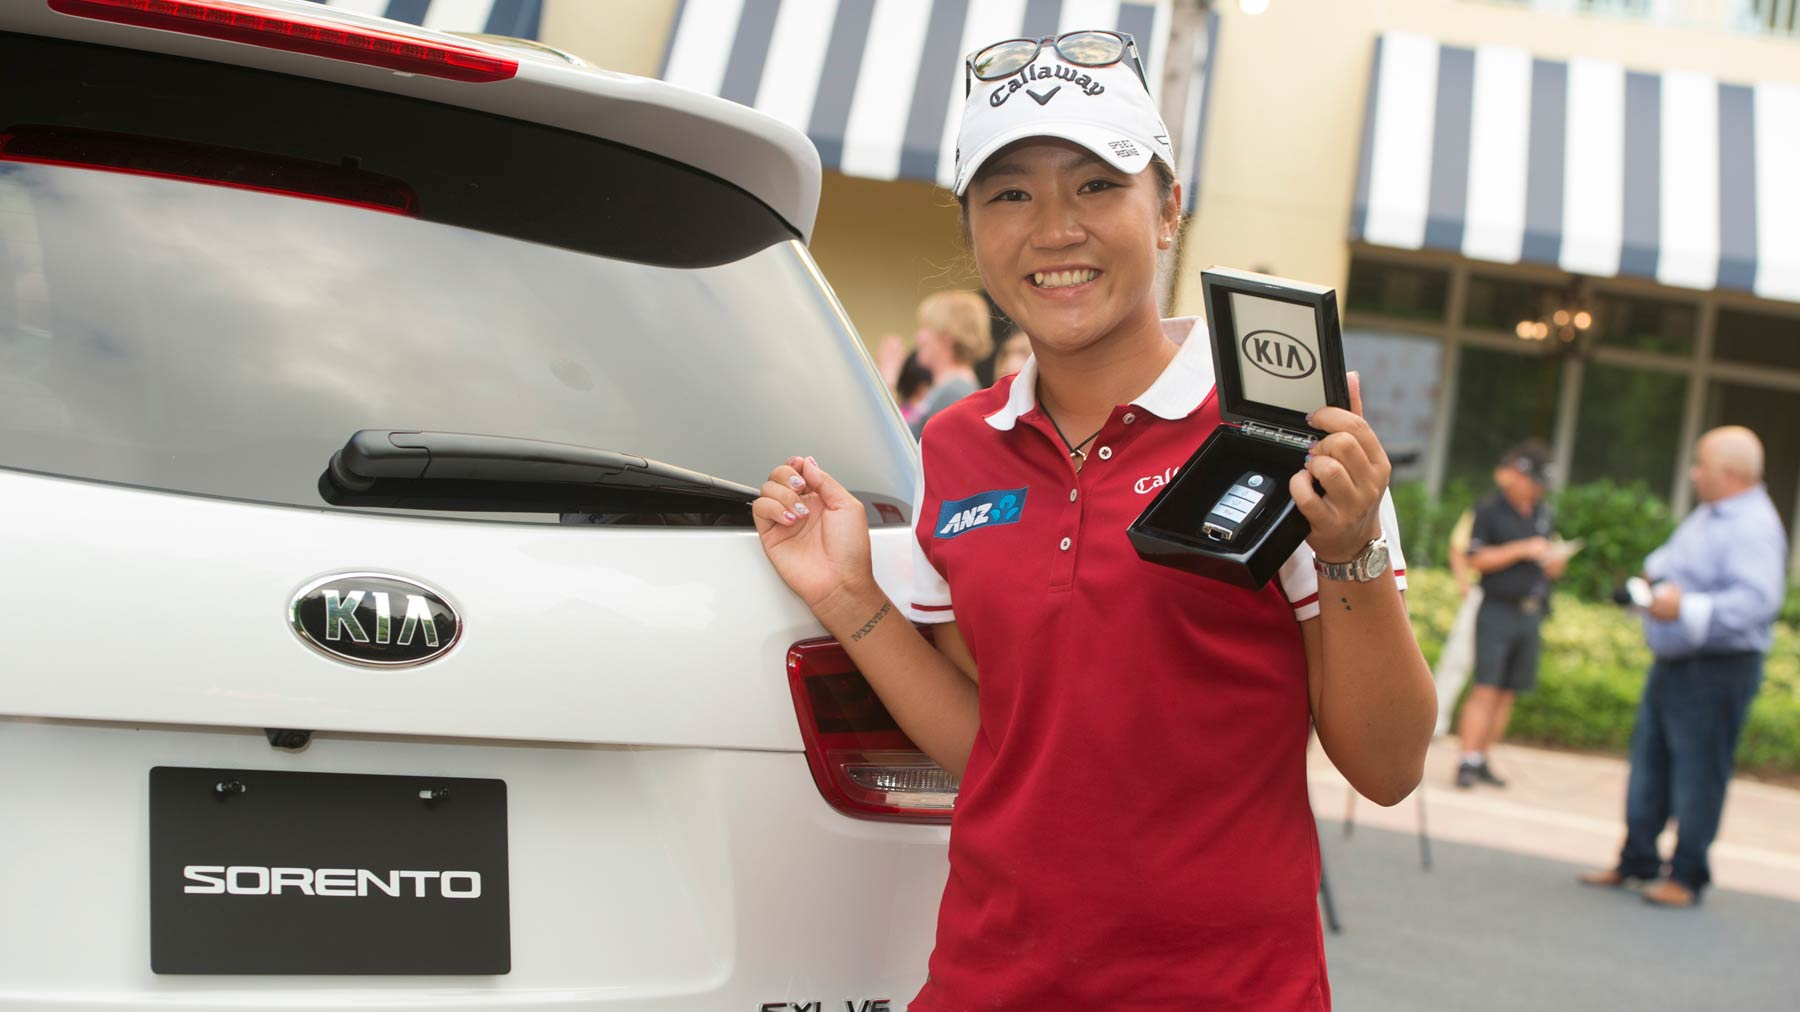 2015 Kia Drive to the Top Award Winner Lydia Ko with her new 2016 Kia Sorento